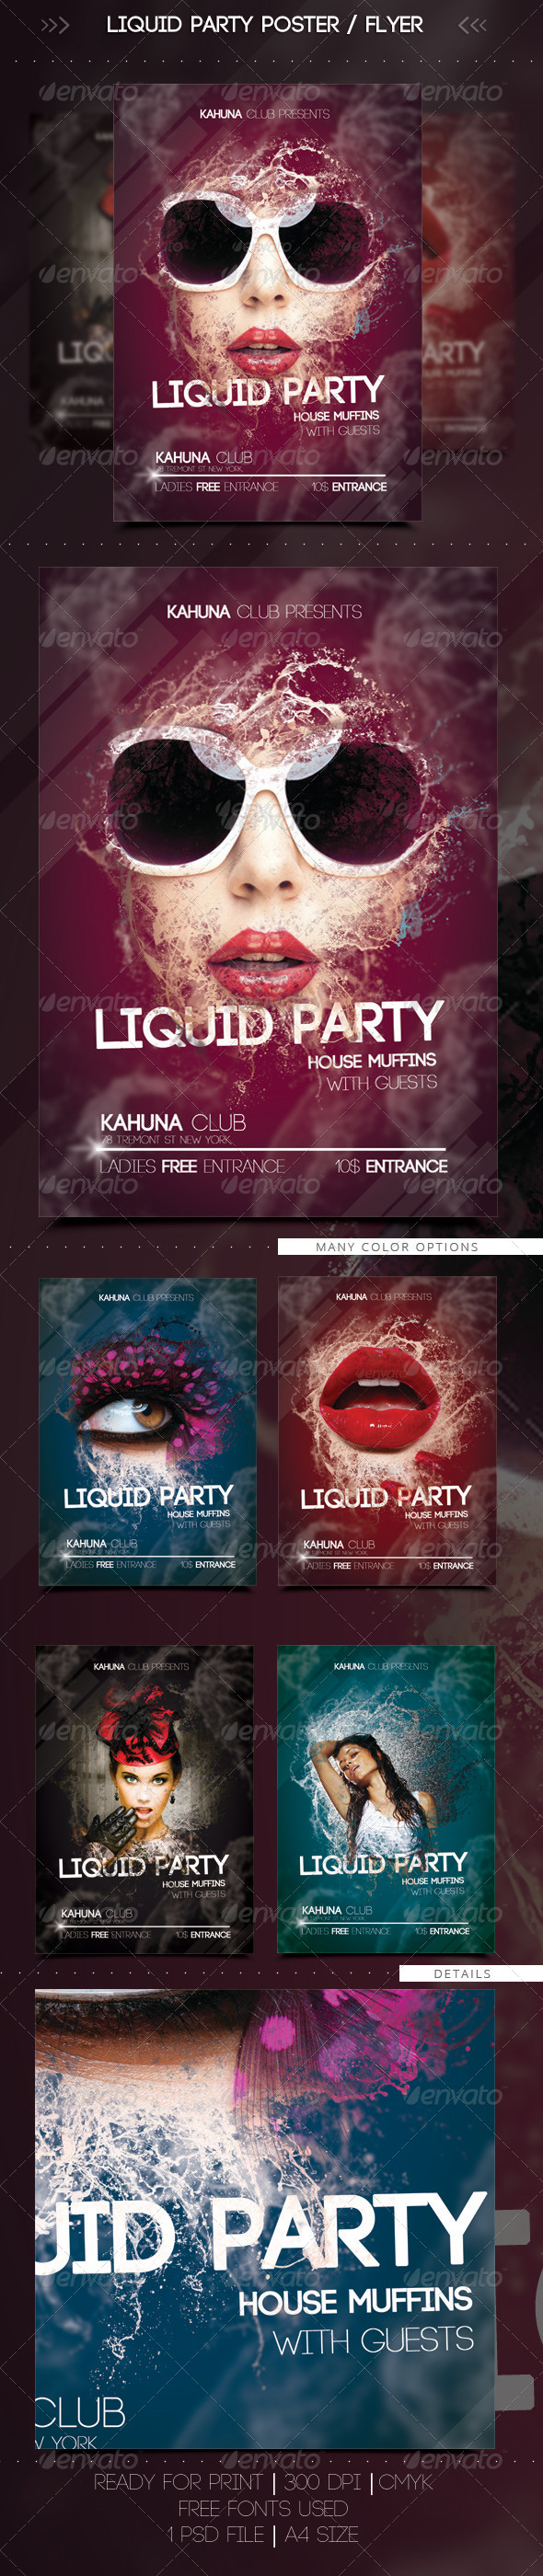 Wet Liquid Party Flyer / Poster - Clubs & Parties Events